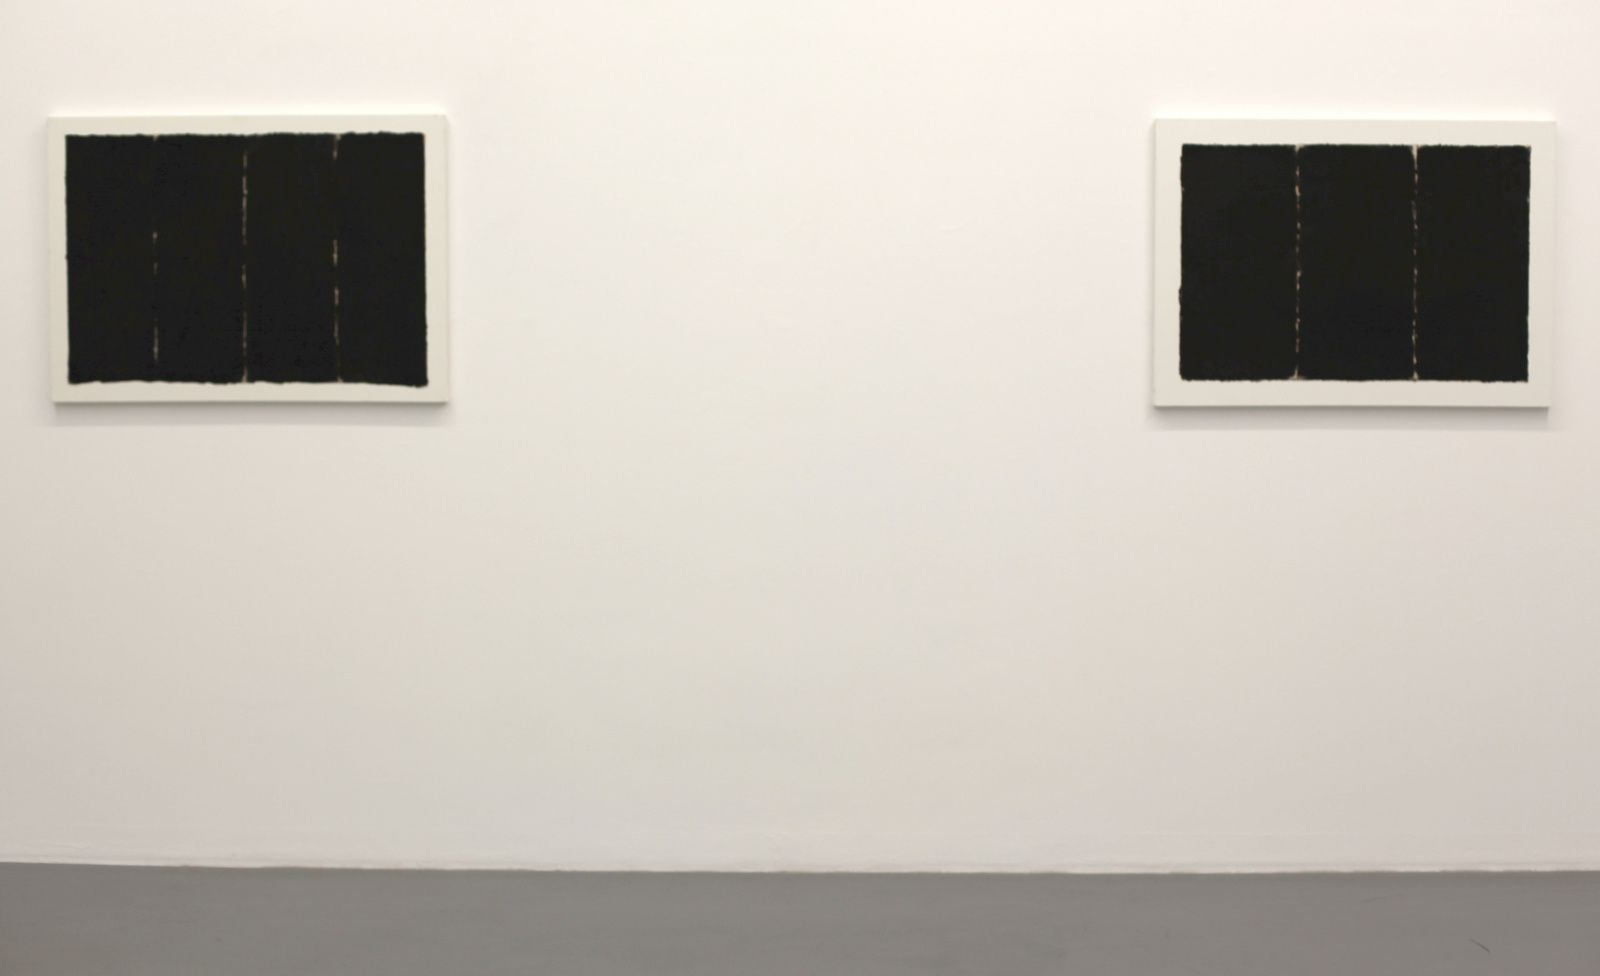 """Conditional Planes 8304 et 8220"", 1982 de Choi Myoung-Young - Courtesy Galerie Perrotin Paris  © Photo Éric Simon"